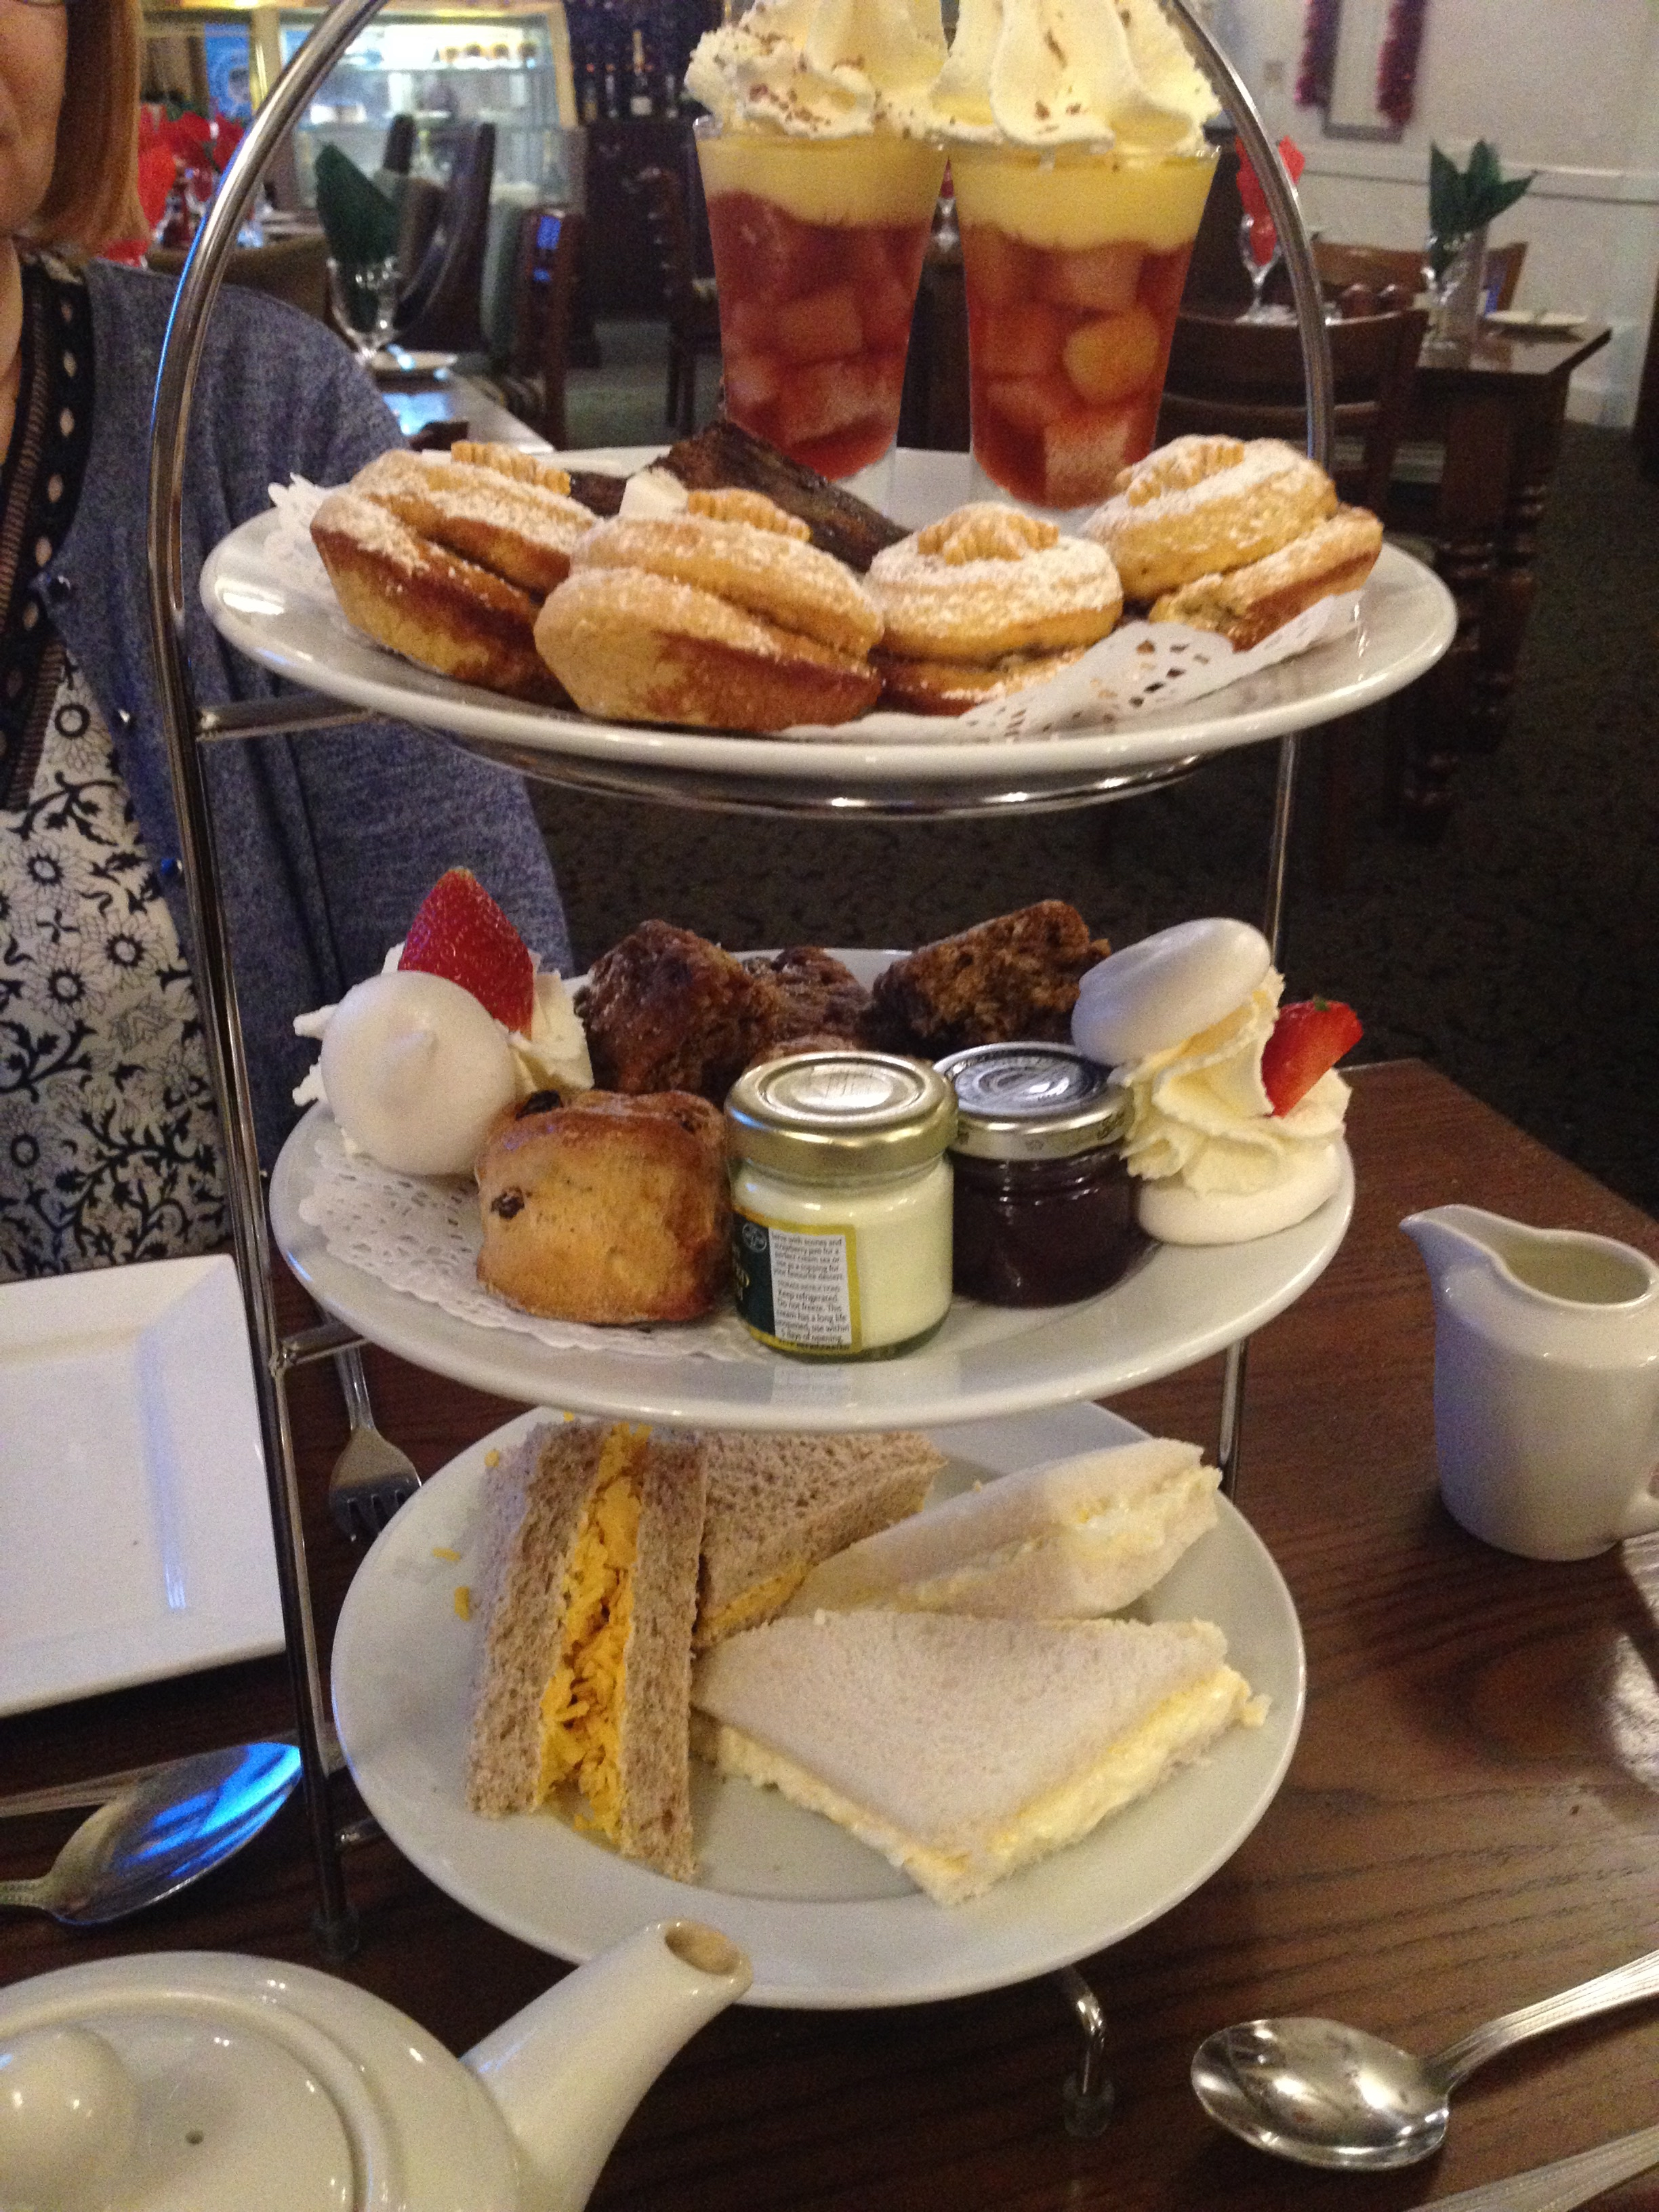 Foodie Review: Afternoon tea at The Hardwick Inn, Derbyshire